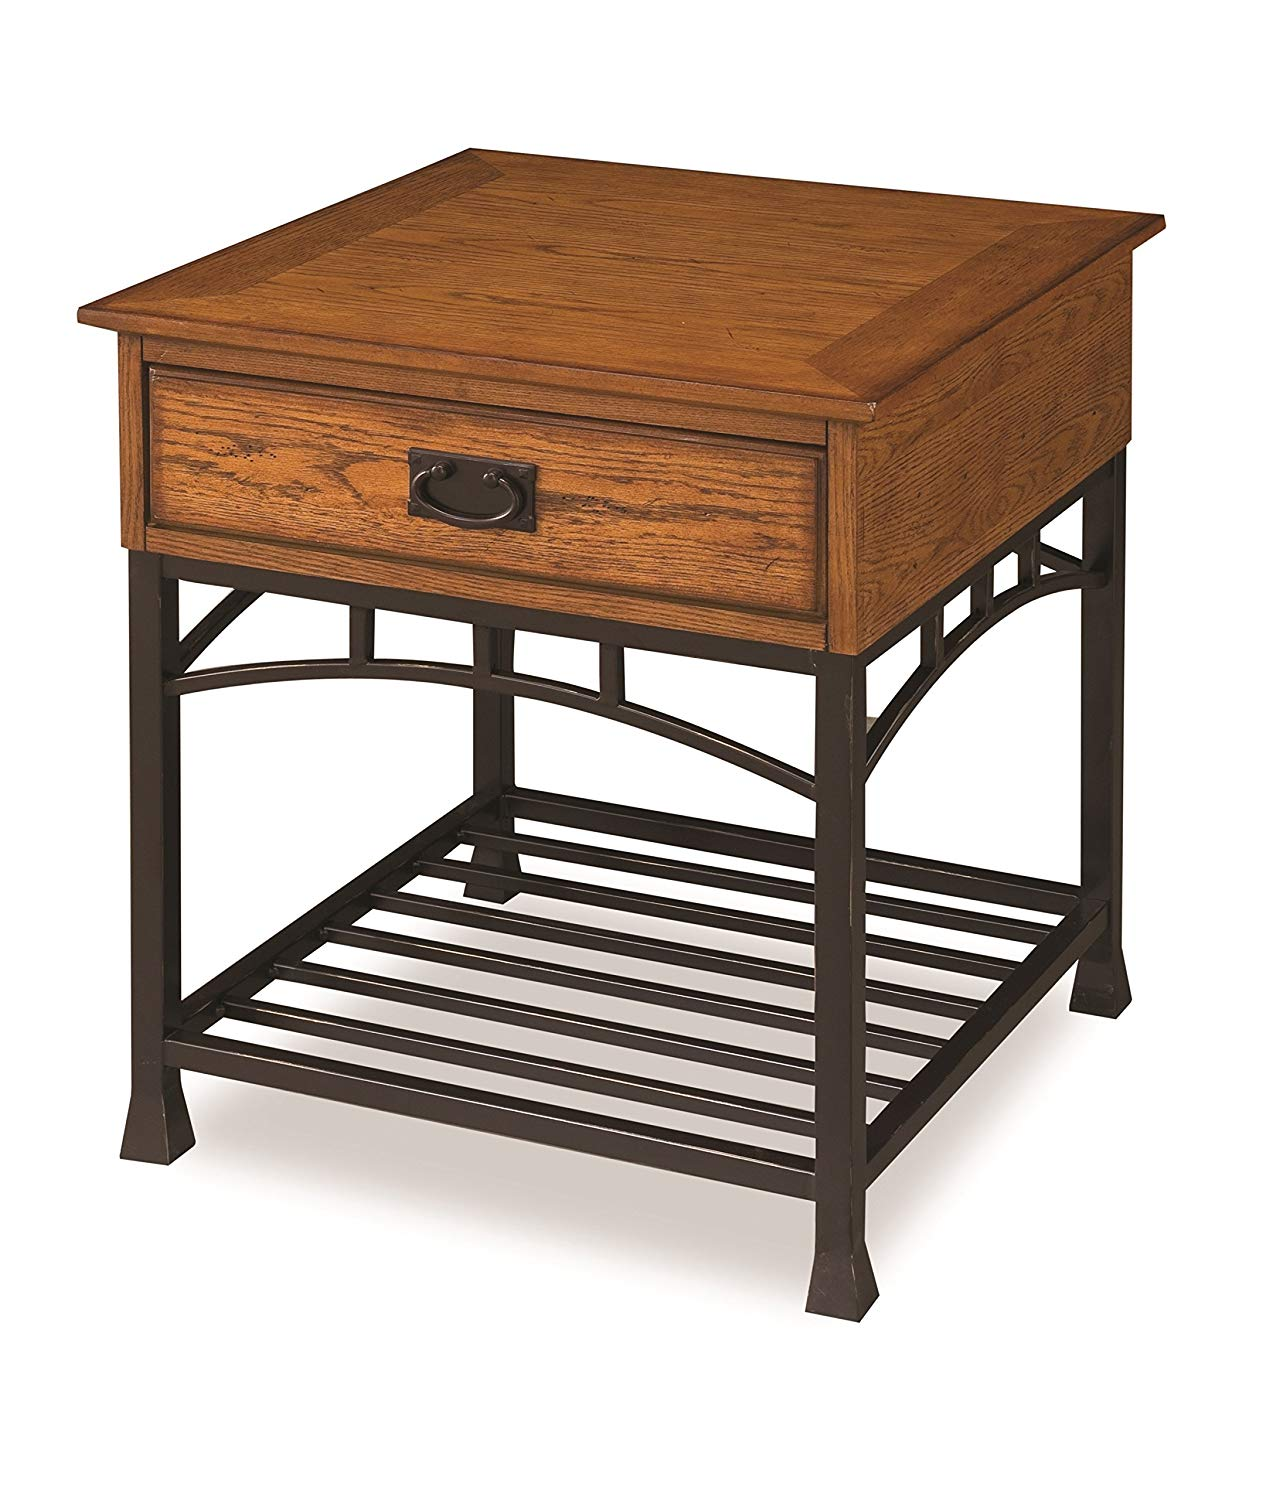 home style modern craftsman end table distressed oak small pine accent finish kitchen dining bird purple lamp keter beer cooler target patio black aluminum outdoor coffee metal